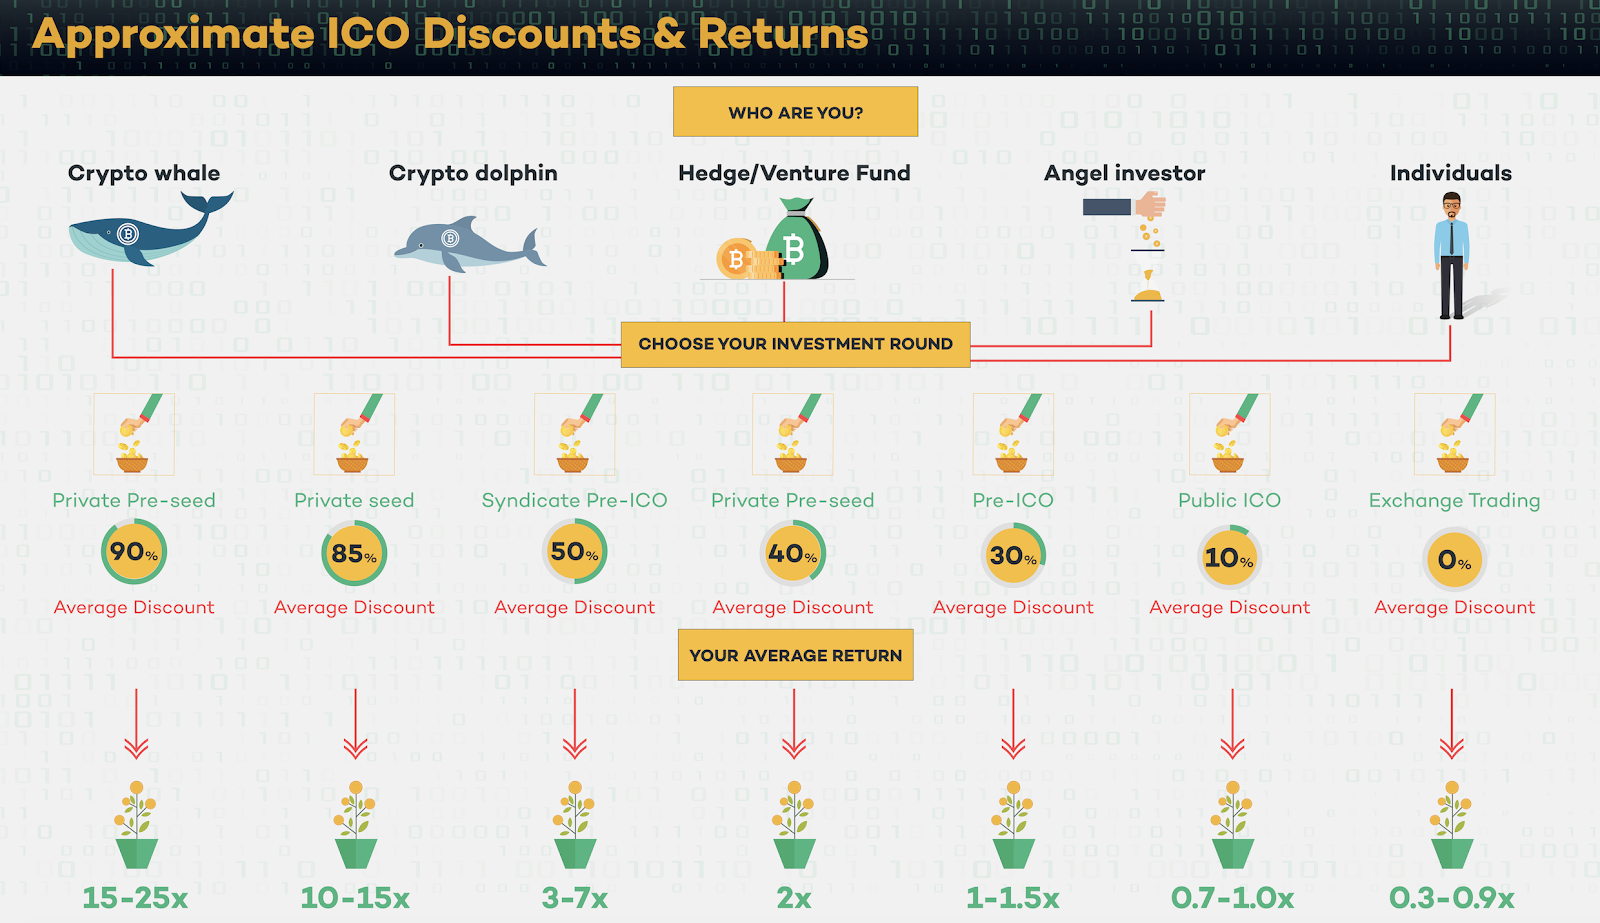 When breaking the entire investment round down into stagesaccordingto Satis Group Crypto Research, we can refer to the following infographics.